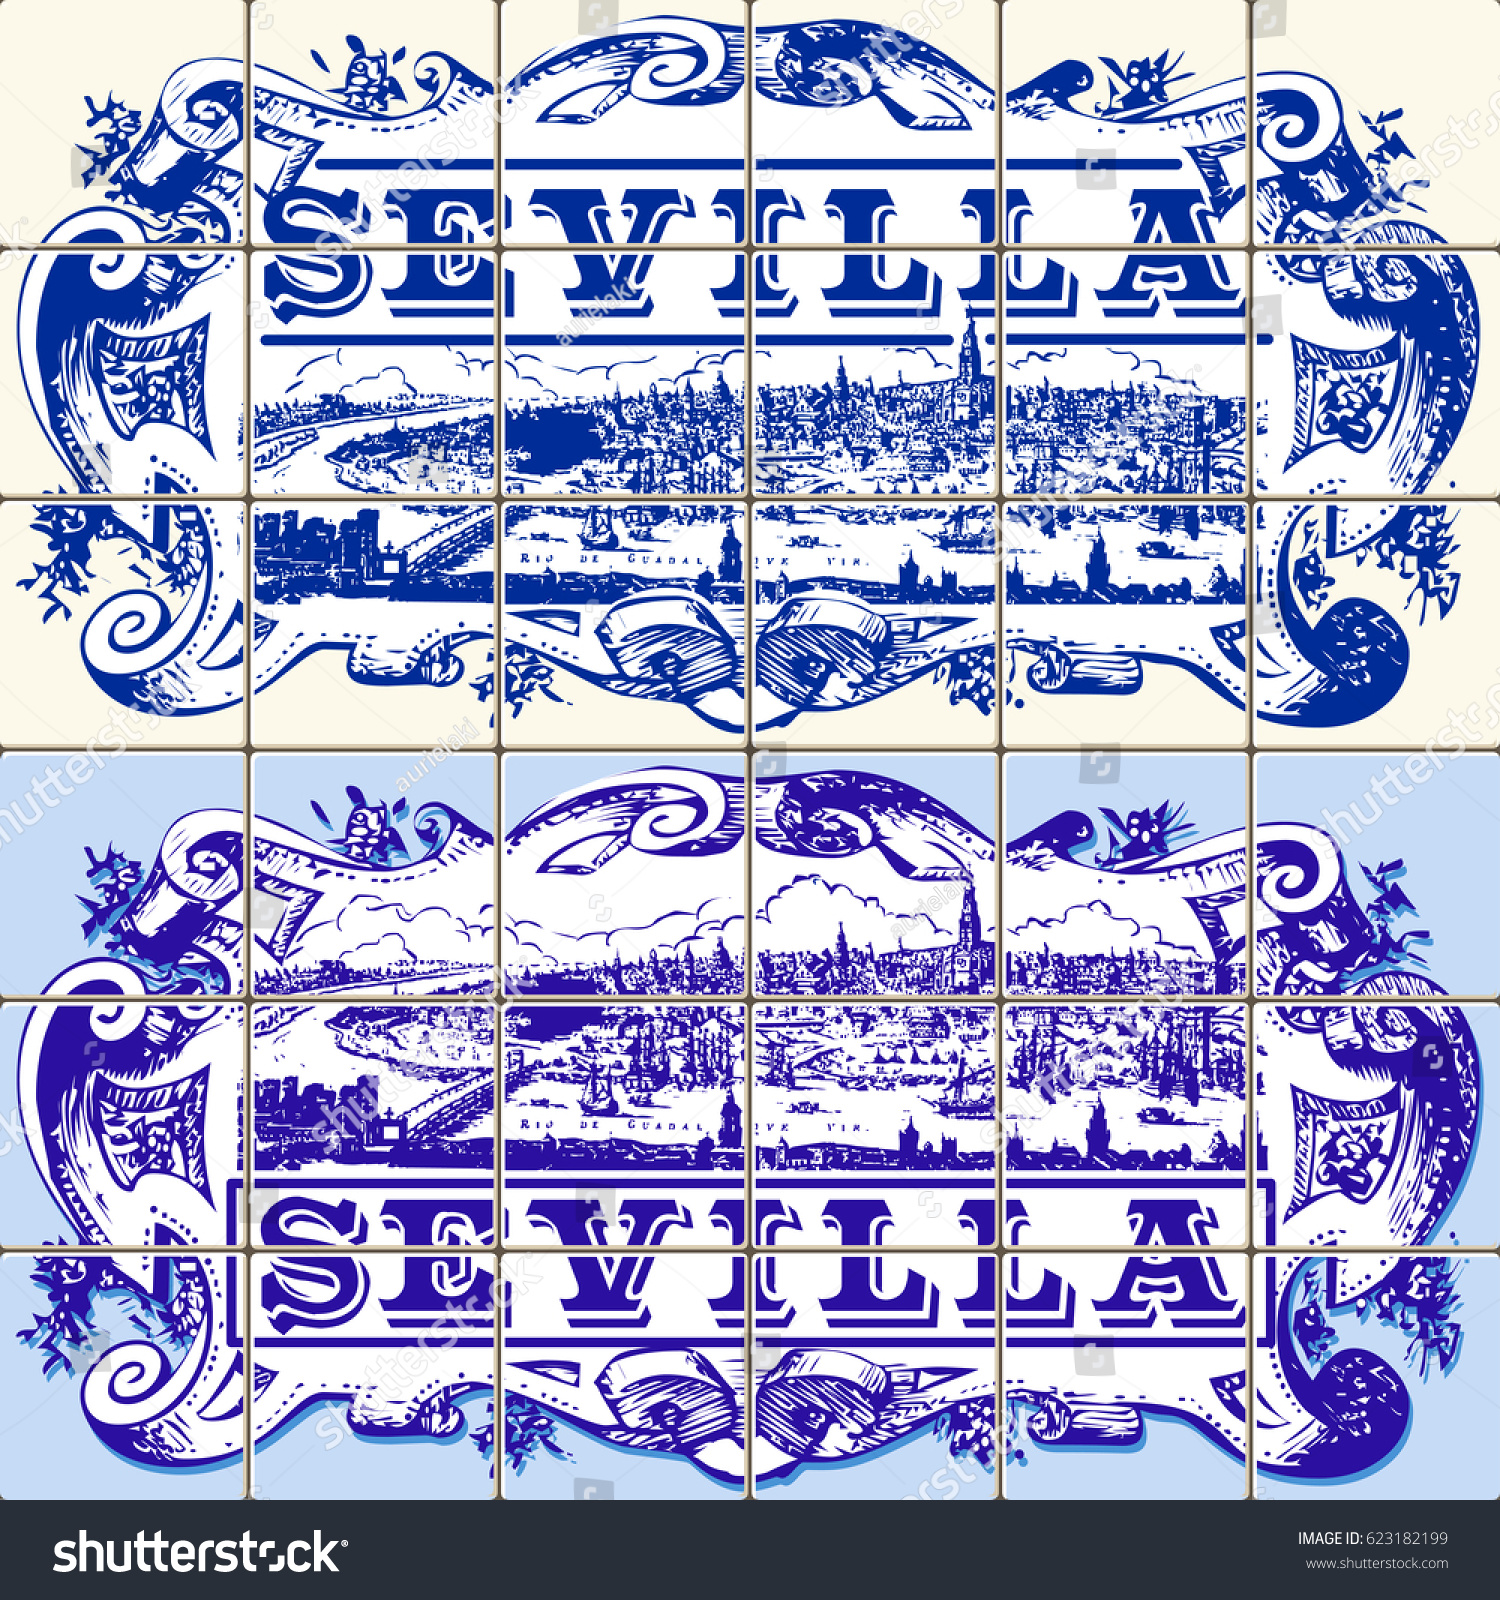 Azulejos Sevilla Indigo Blue Azulejos Pattern Sevilla Paint Stock Vector Royalty